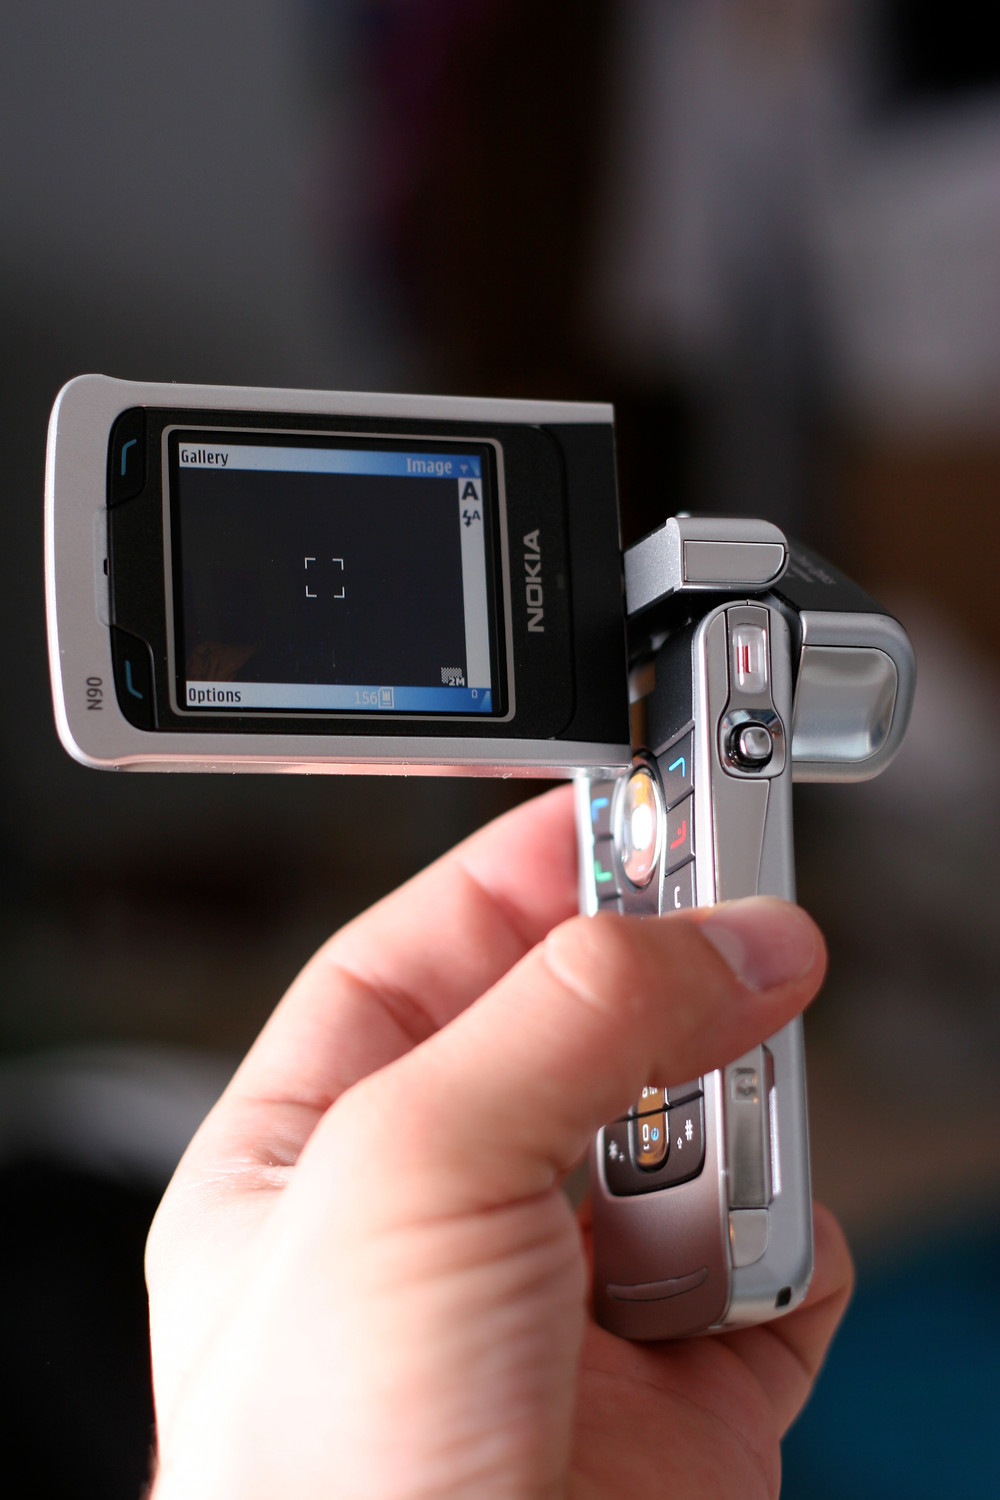 Nokia N90 with 2 Megapixel Camera